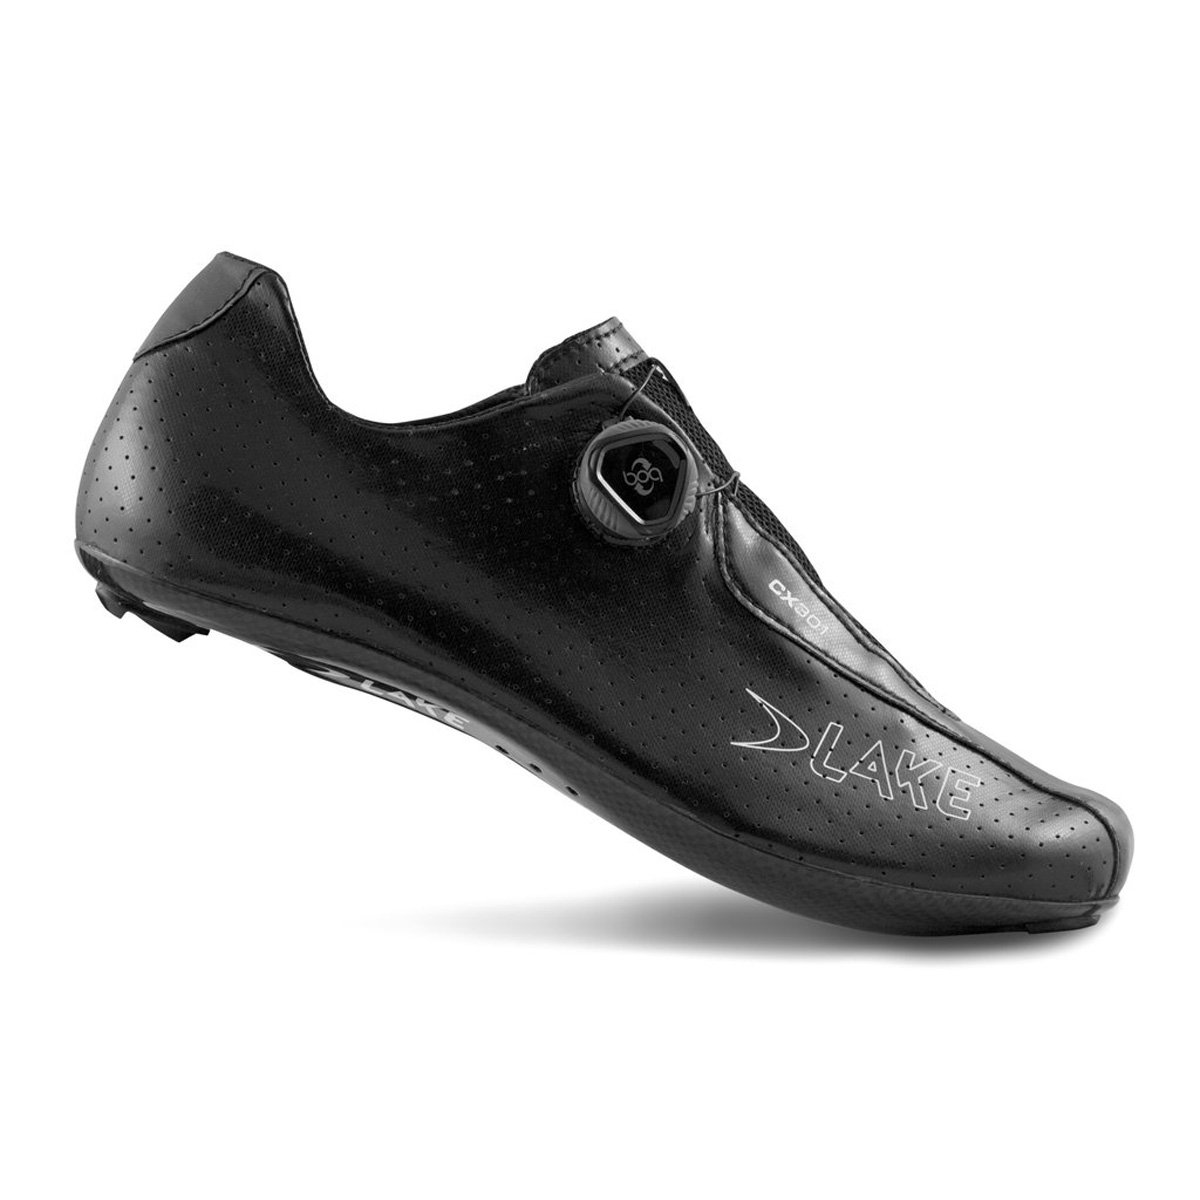 湖cx301 Cycling Shoe – Wide – Men 's B06XKZCKJN 47|ブラック ブラック 47